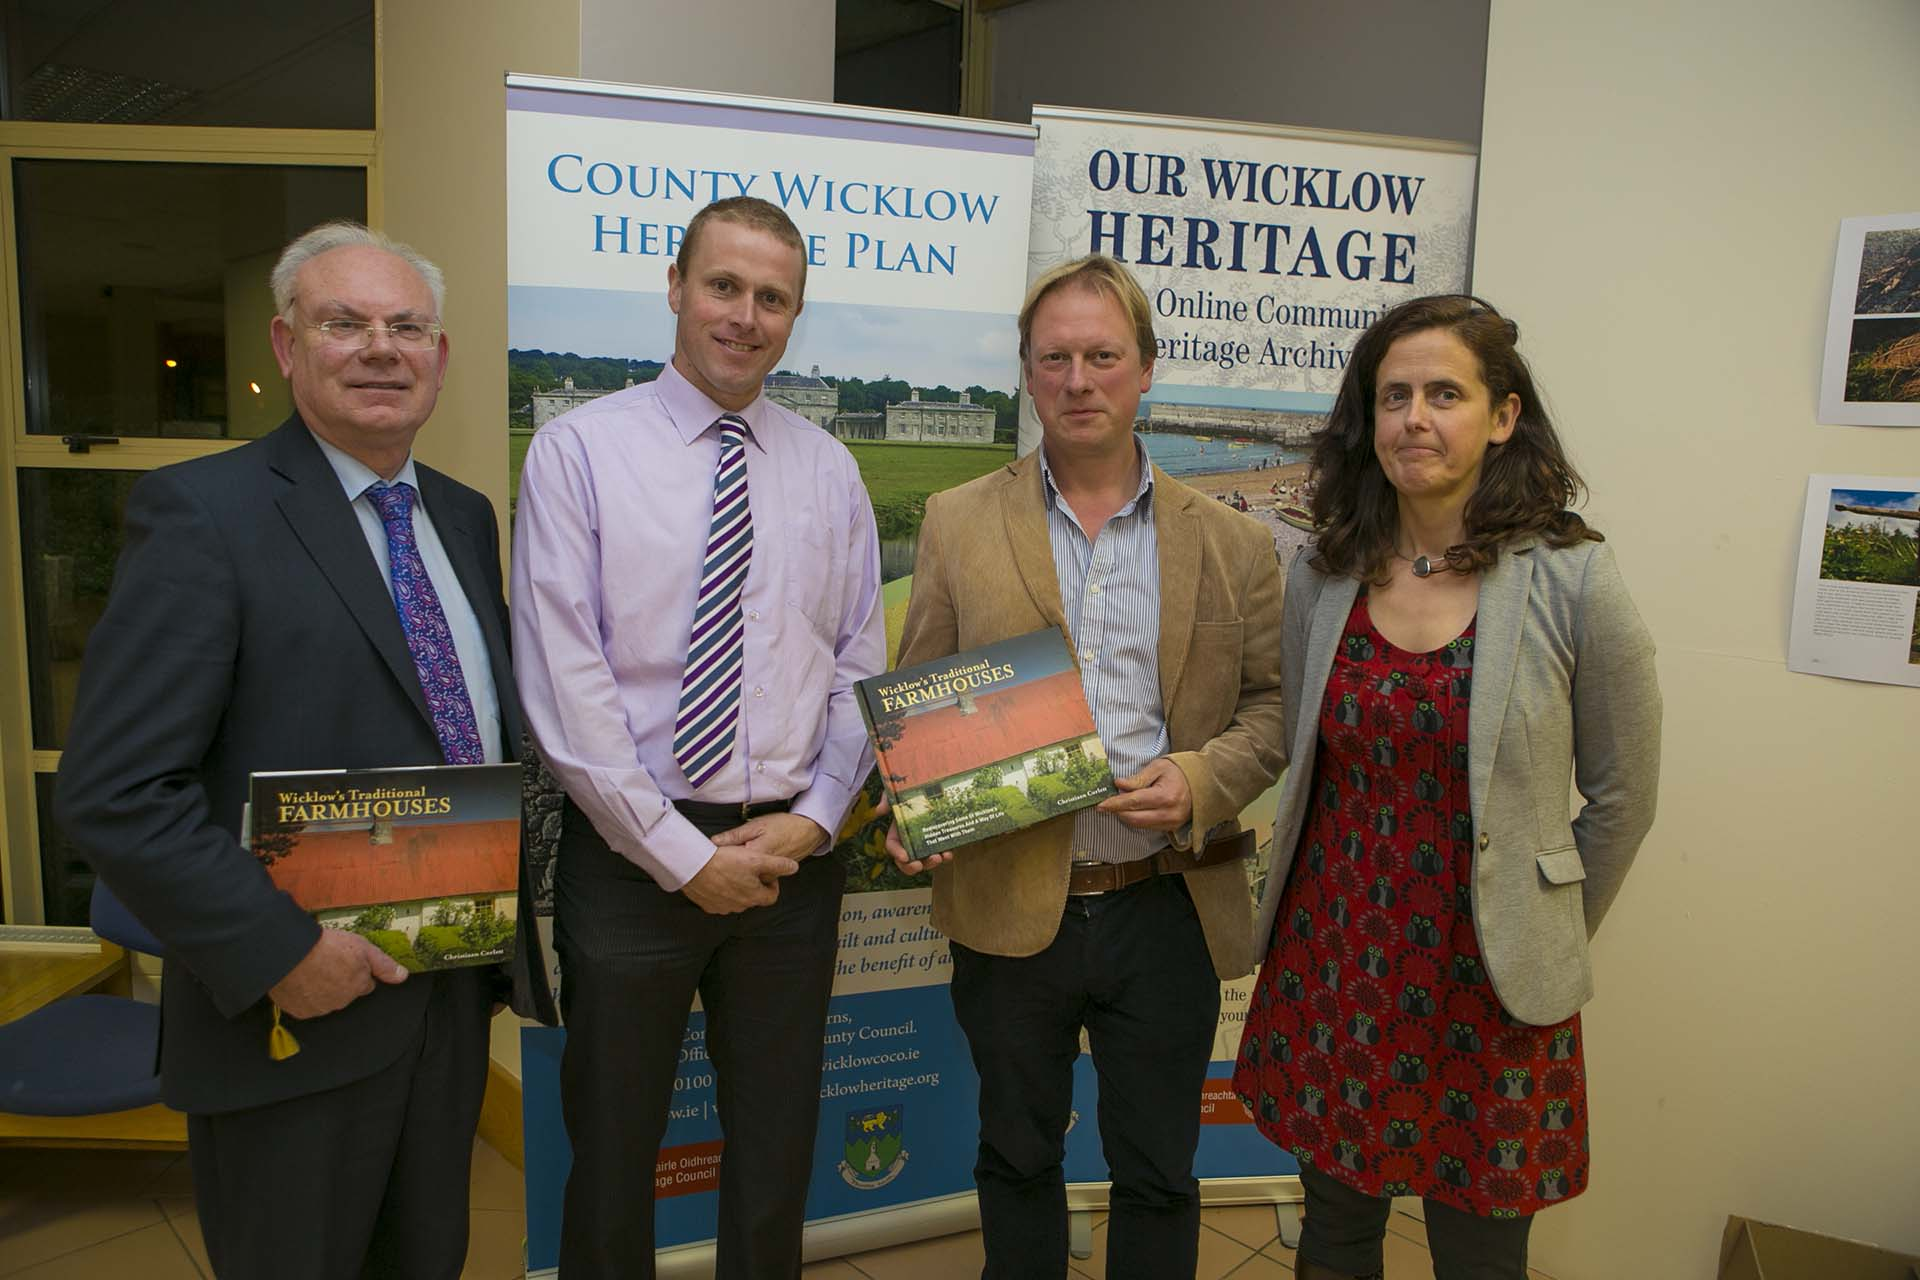 County manager Eddie Sheehy, County Chairman Christopher Fox and heritage Officer Deirdre Burns with Author Chris Corlett